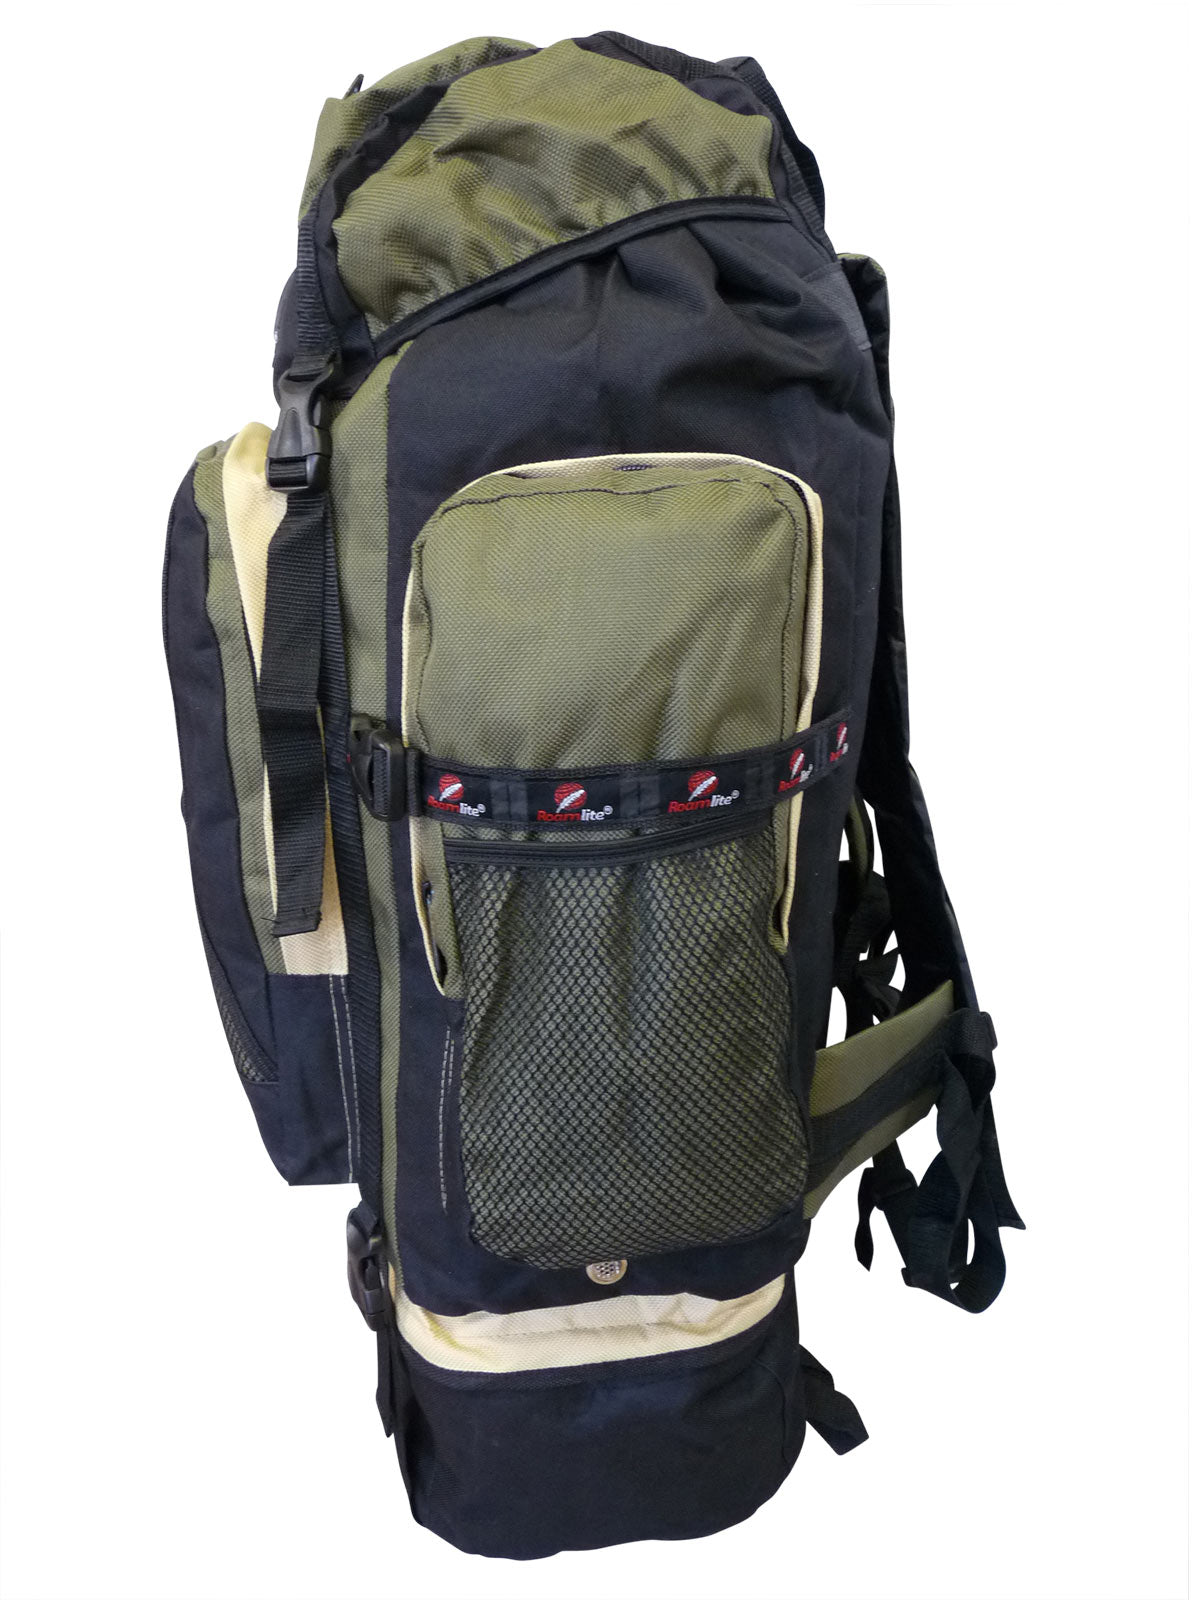 Festival Camping Backpack Bag RL02KGss